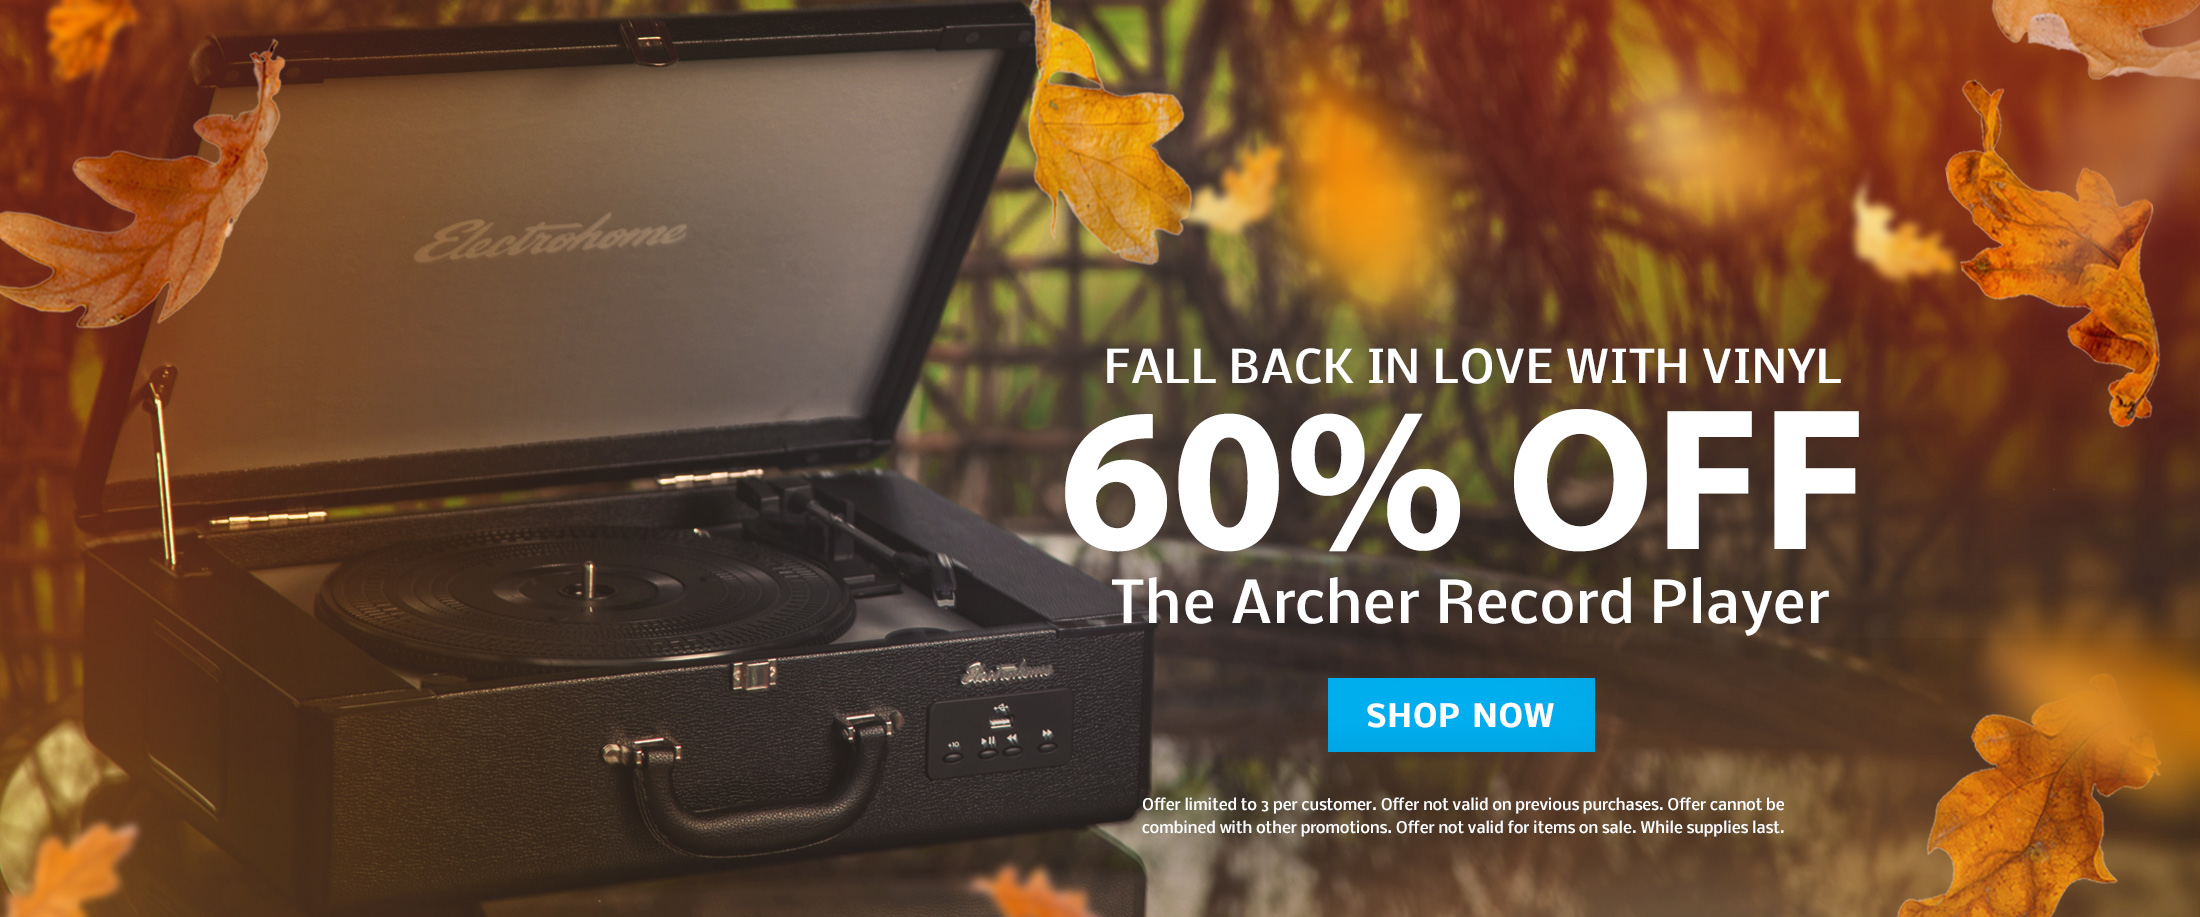 FALL BACK IN LOVE WITH VINYL